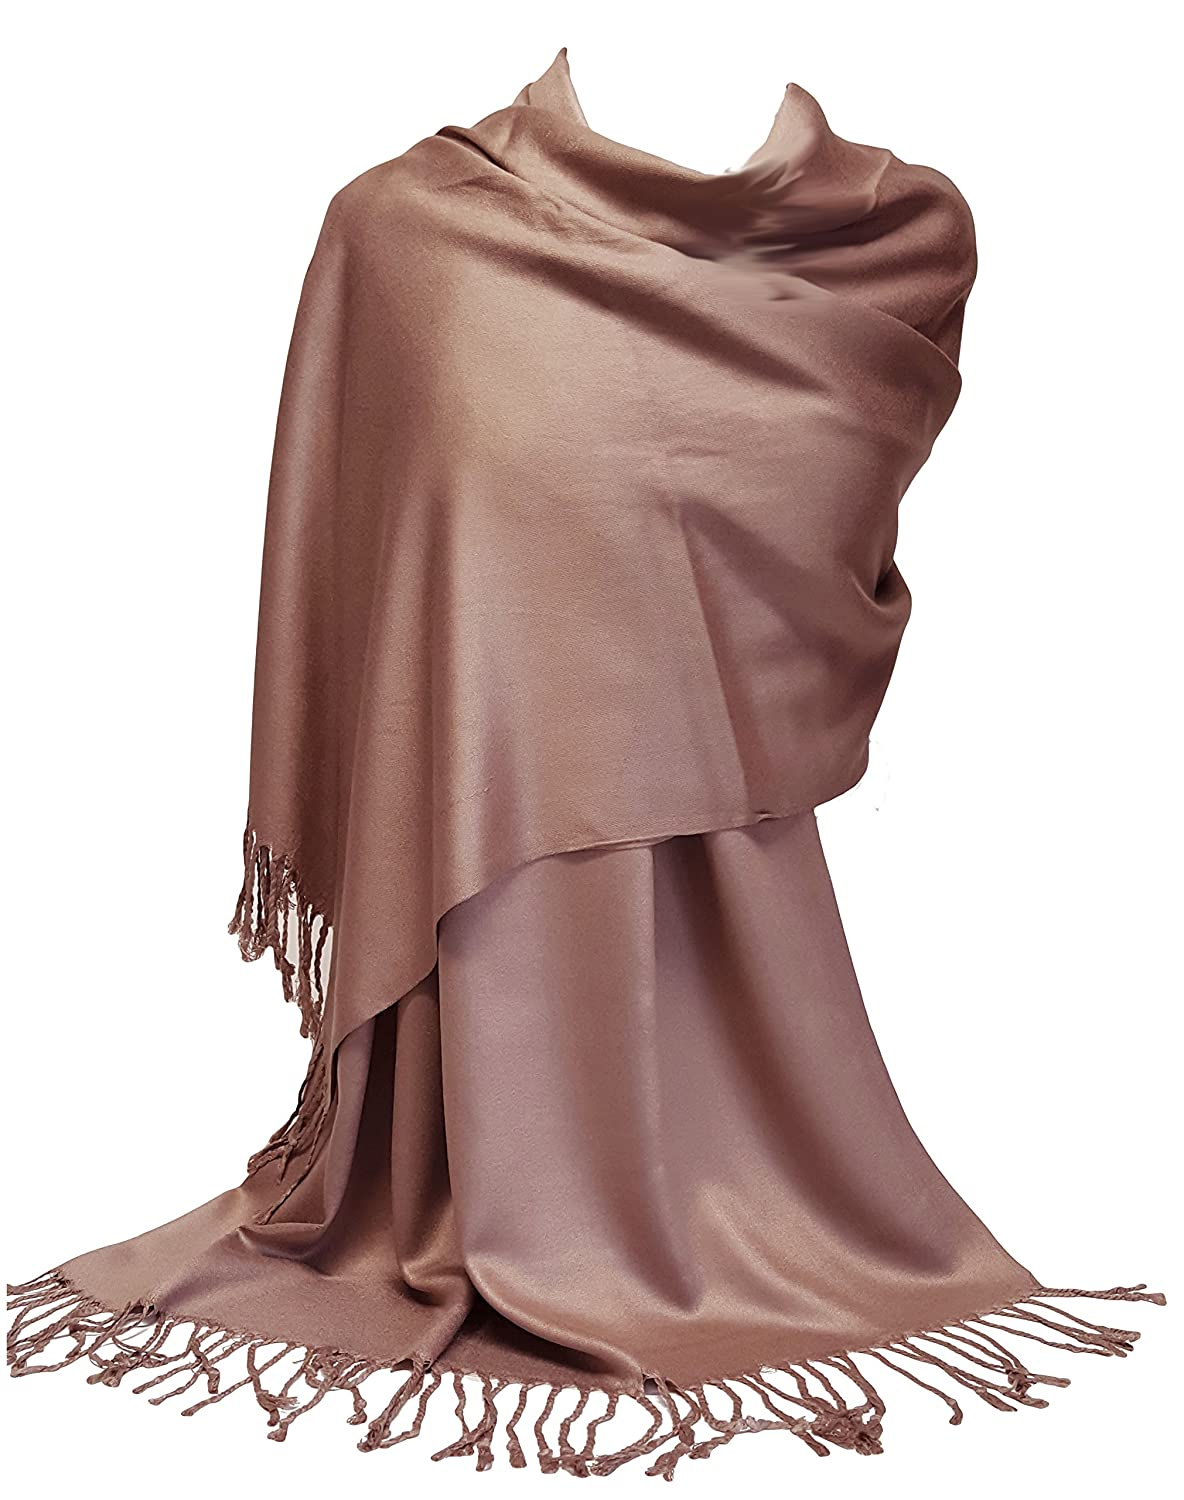 GFM® Ultra Smooth Cashmere Feel Soft Pashmina Style Wrap Scarf